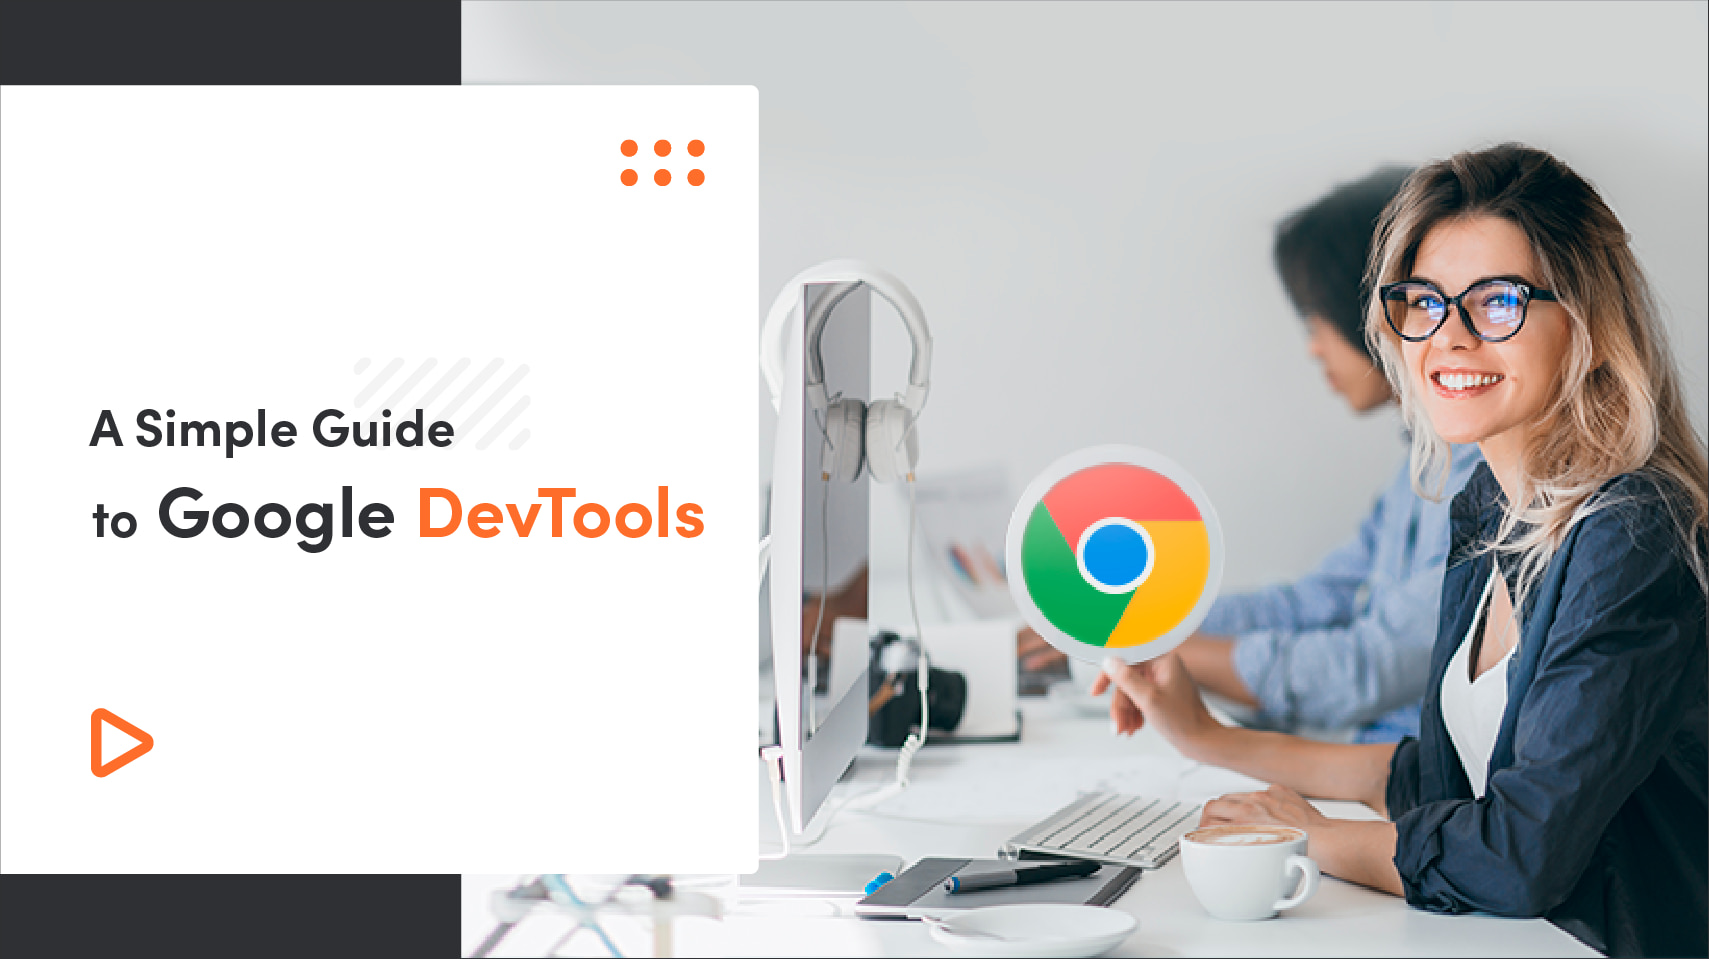 A Simple Guide to Google DevTools